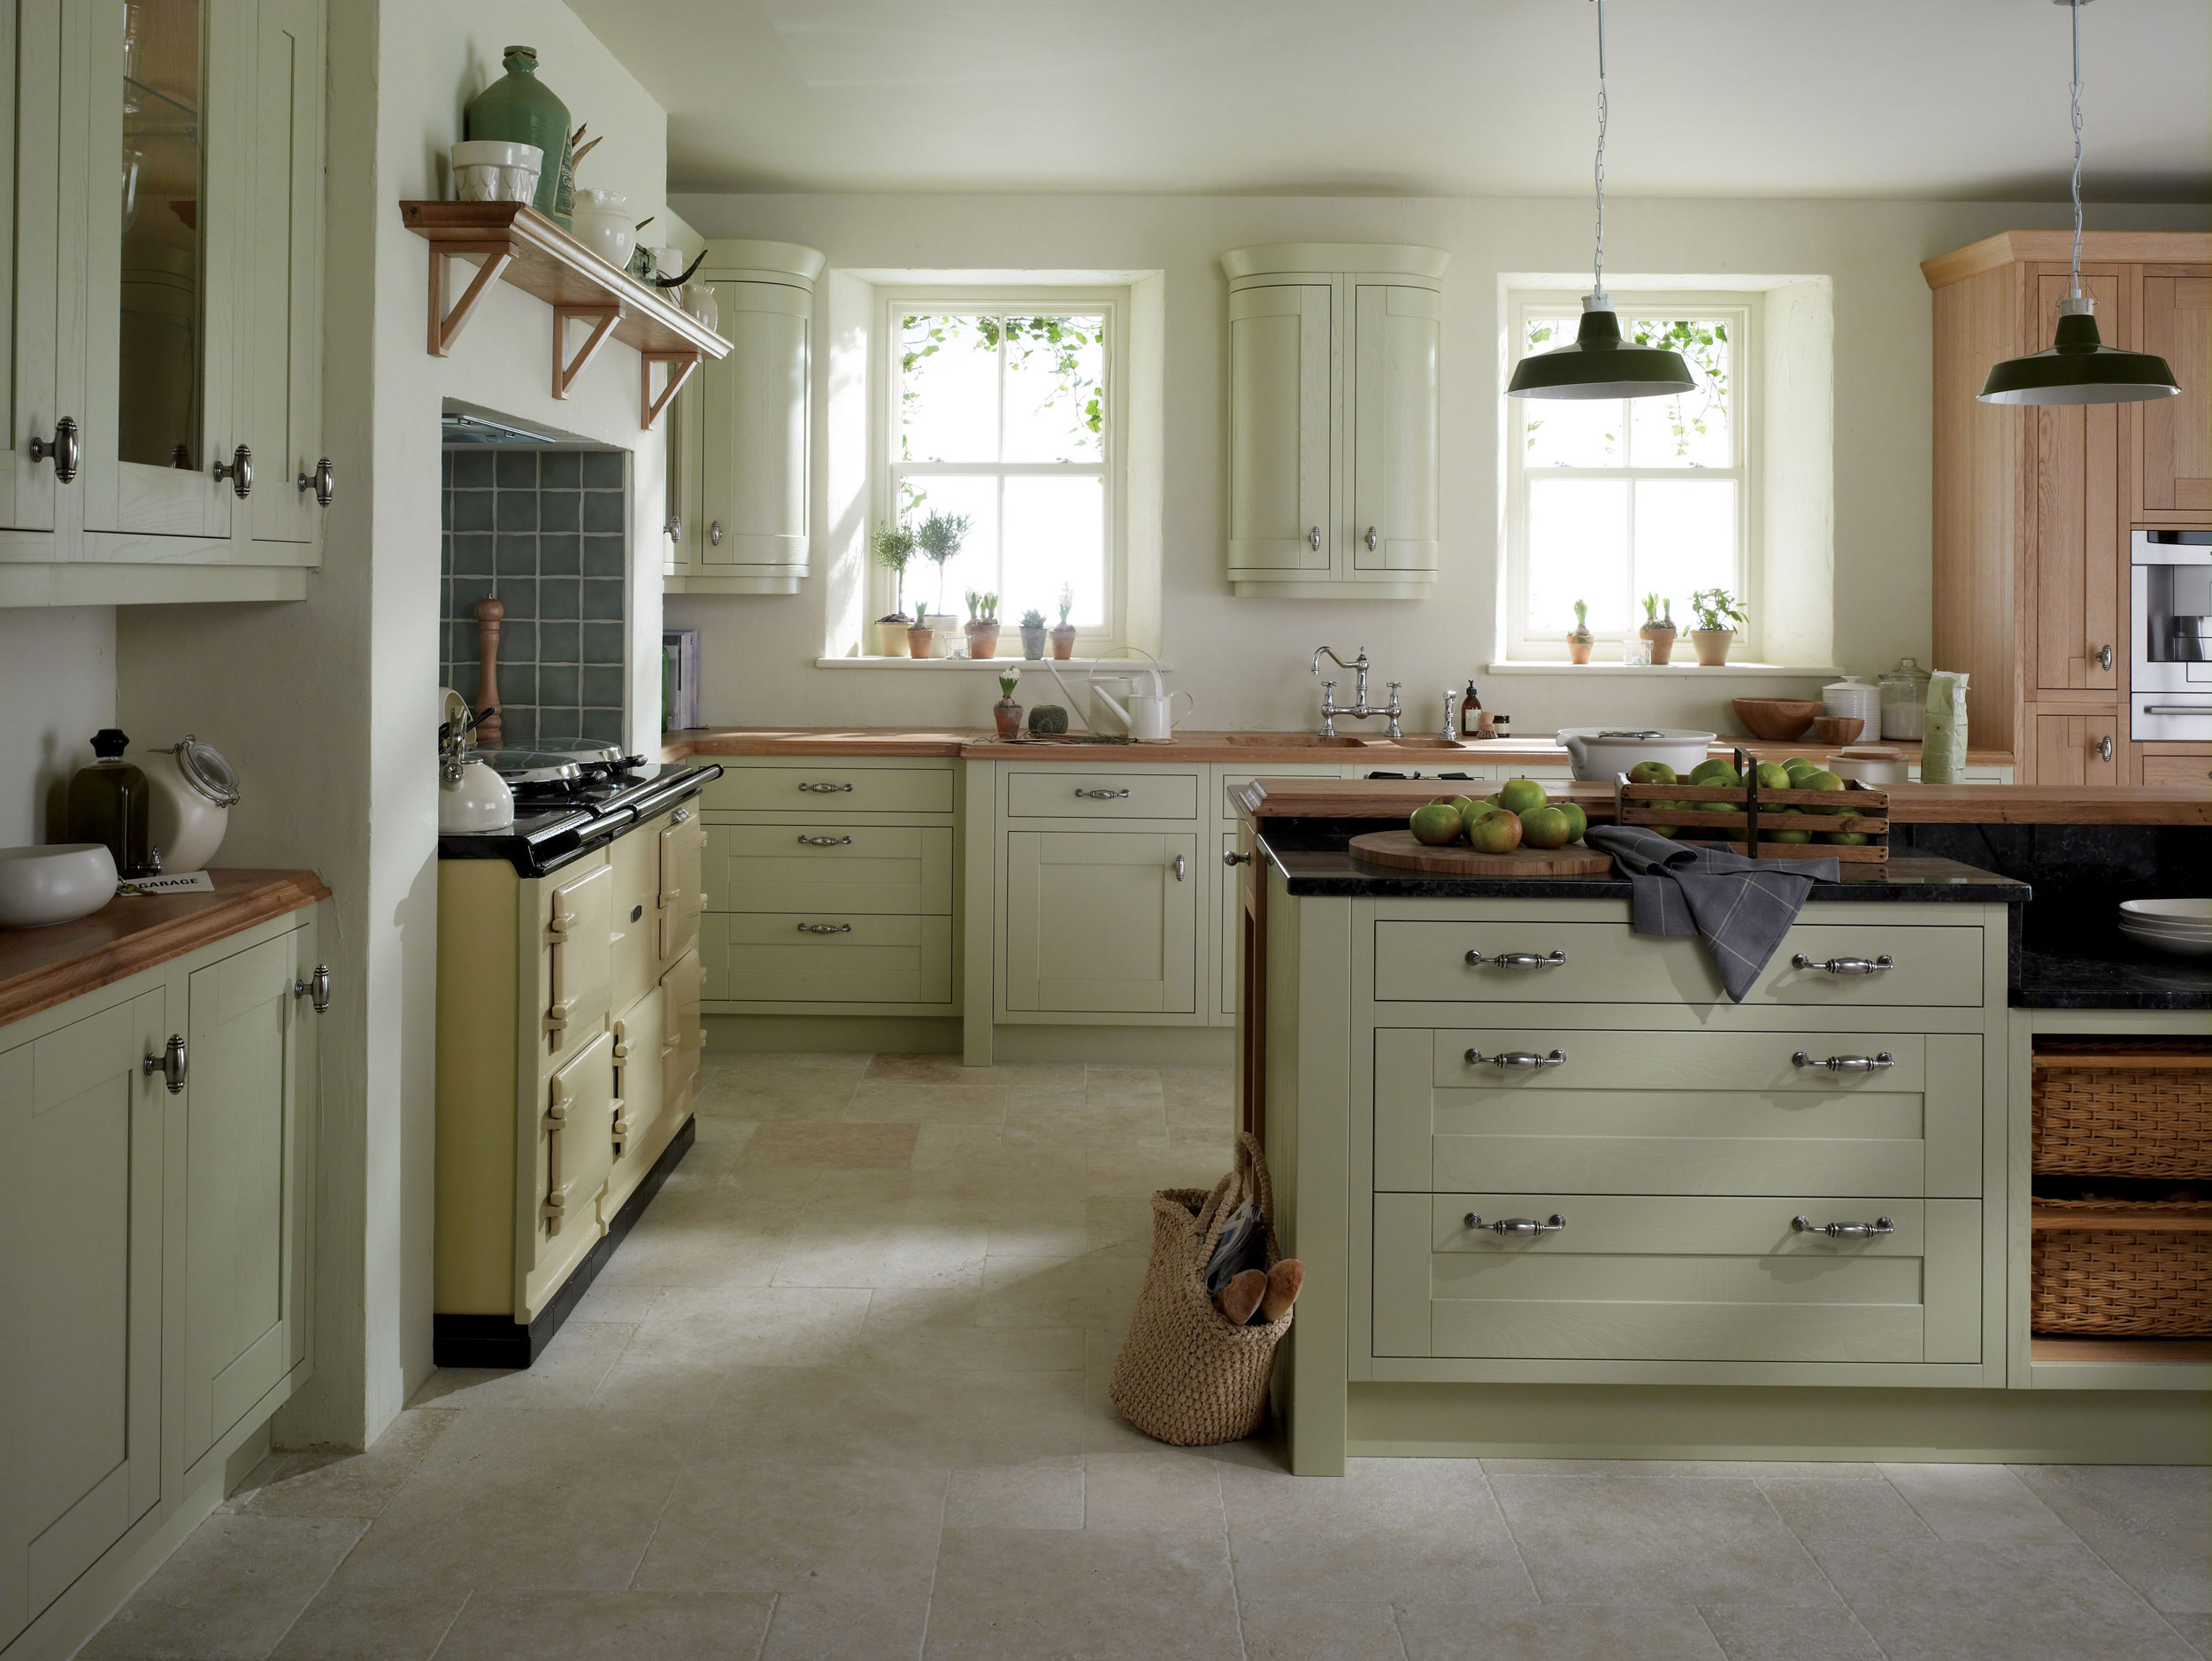 Milton sage from eaton kitchen designs wolverhampton for Period kitchen design